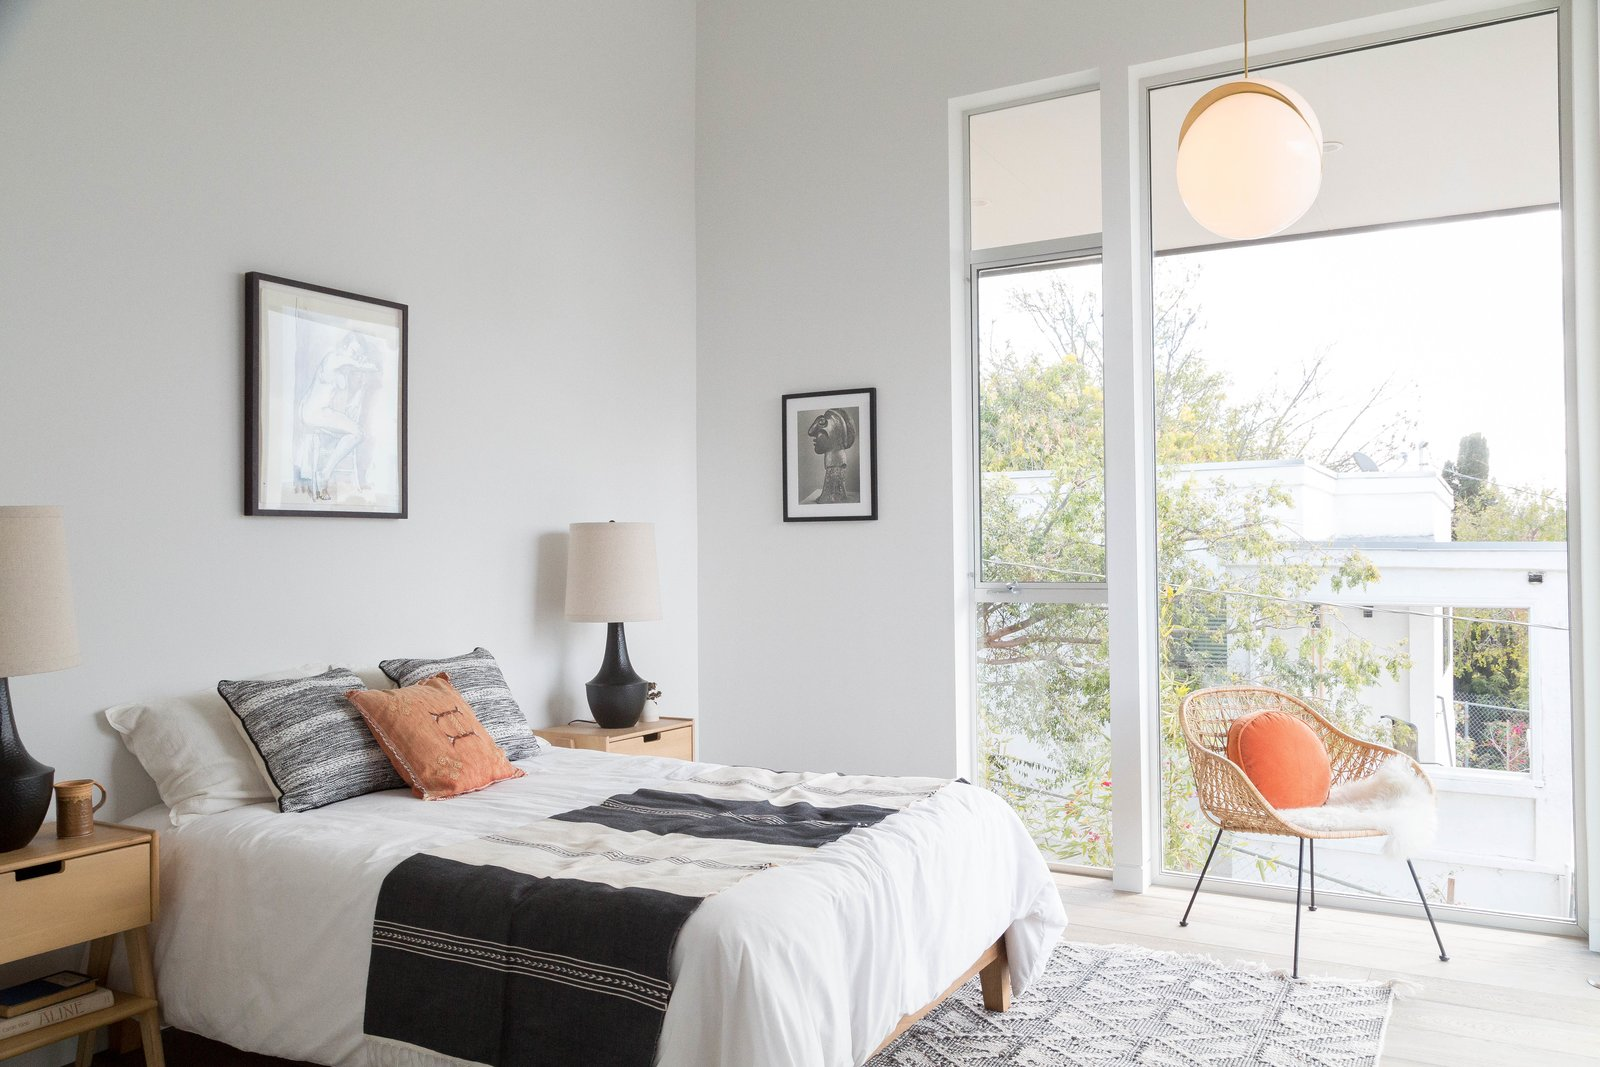 Bedroom, Rug, Chair, Bed, Pendant, Light Hardwood, Night Stands, Table, and Lamps The third level houses three bedrooms with ensuite baths.  Best Bedroom Light Hardwood Lamps Table Photos from A Tiered Home in Los Angeles Hugs a Steep Slope